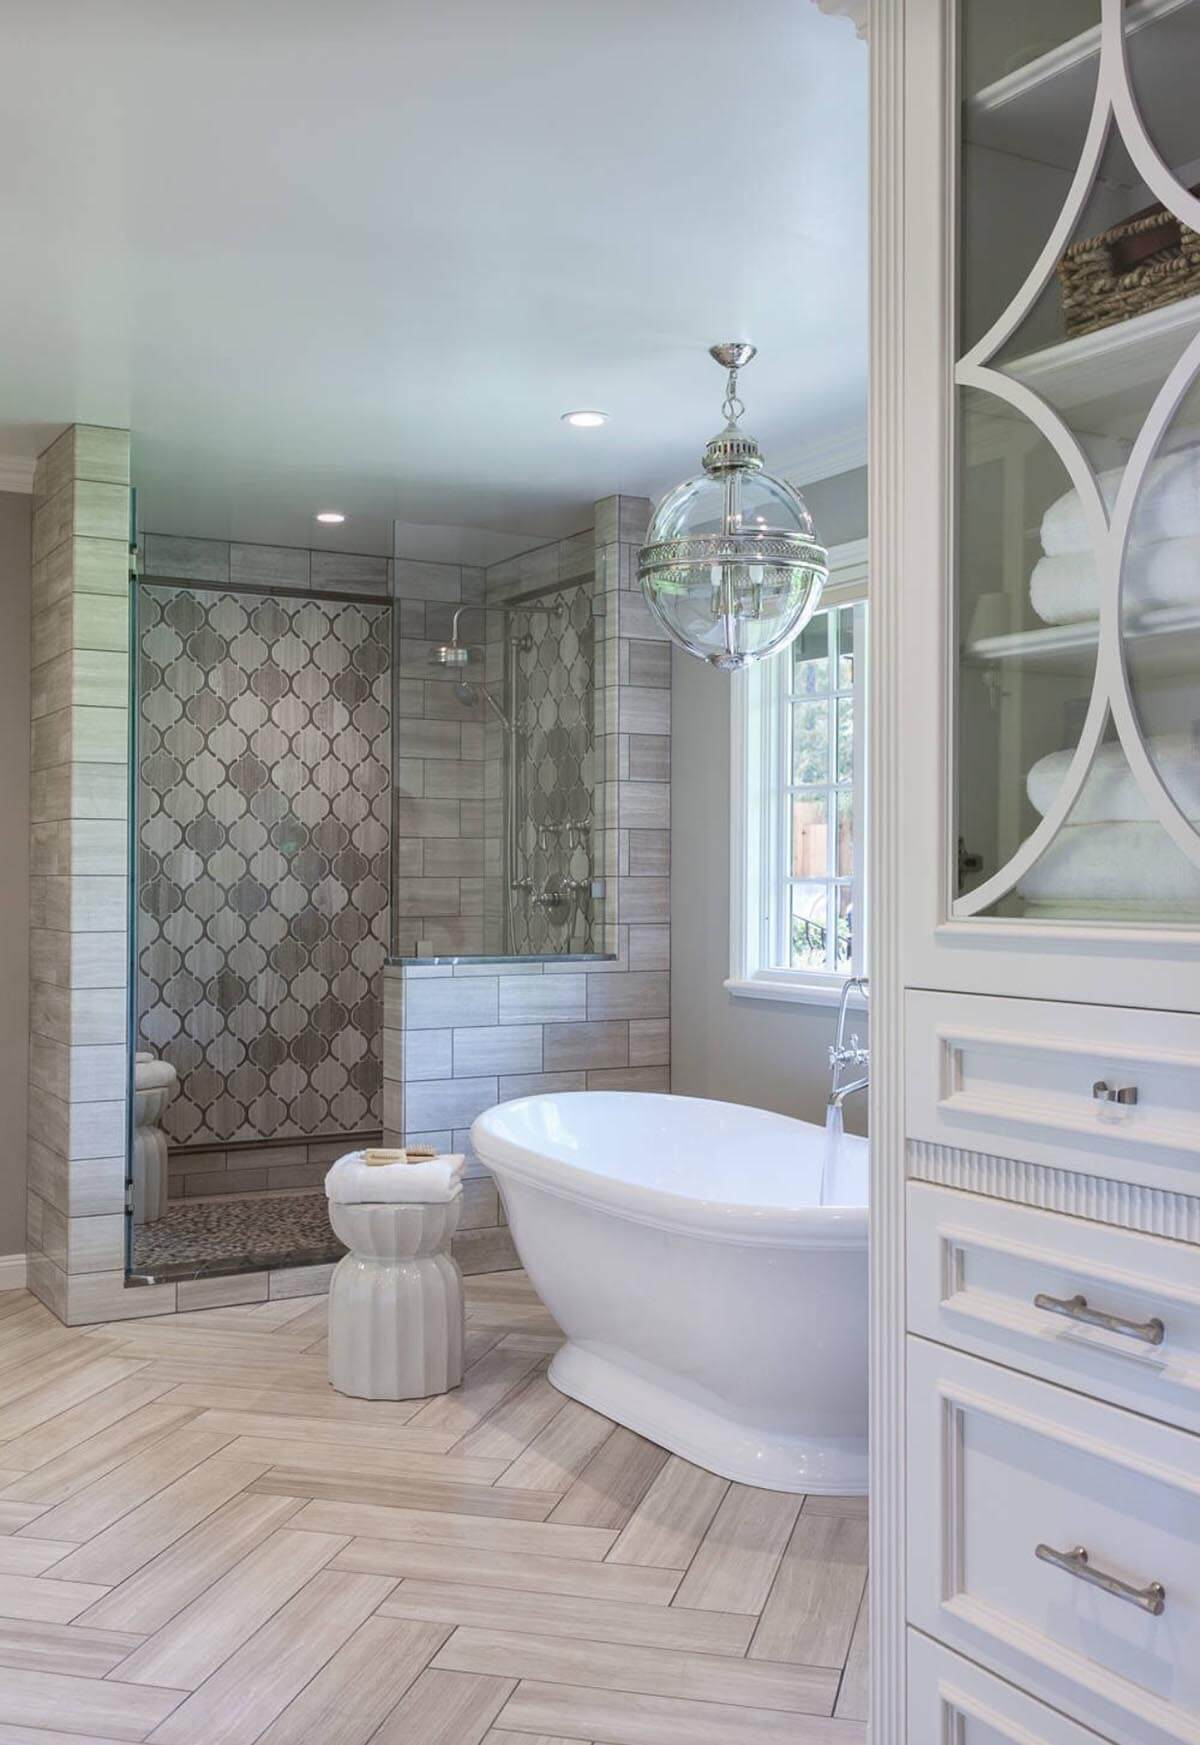 Best Kitchen Gallery: 32 Best Shower Tile Ideas And Designs For 2018 of Bathroom Tile Designs For Showers  on rachelxblog.com